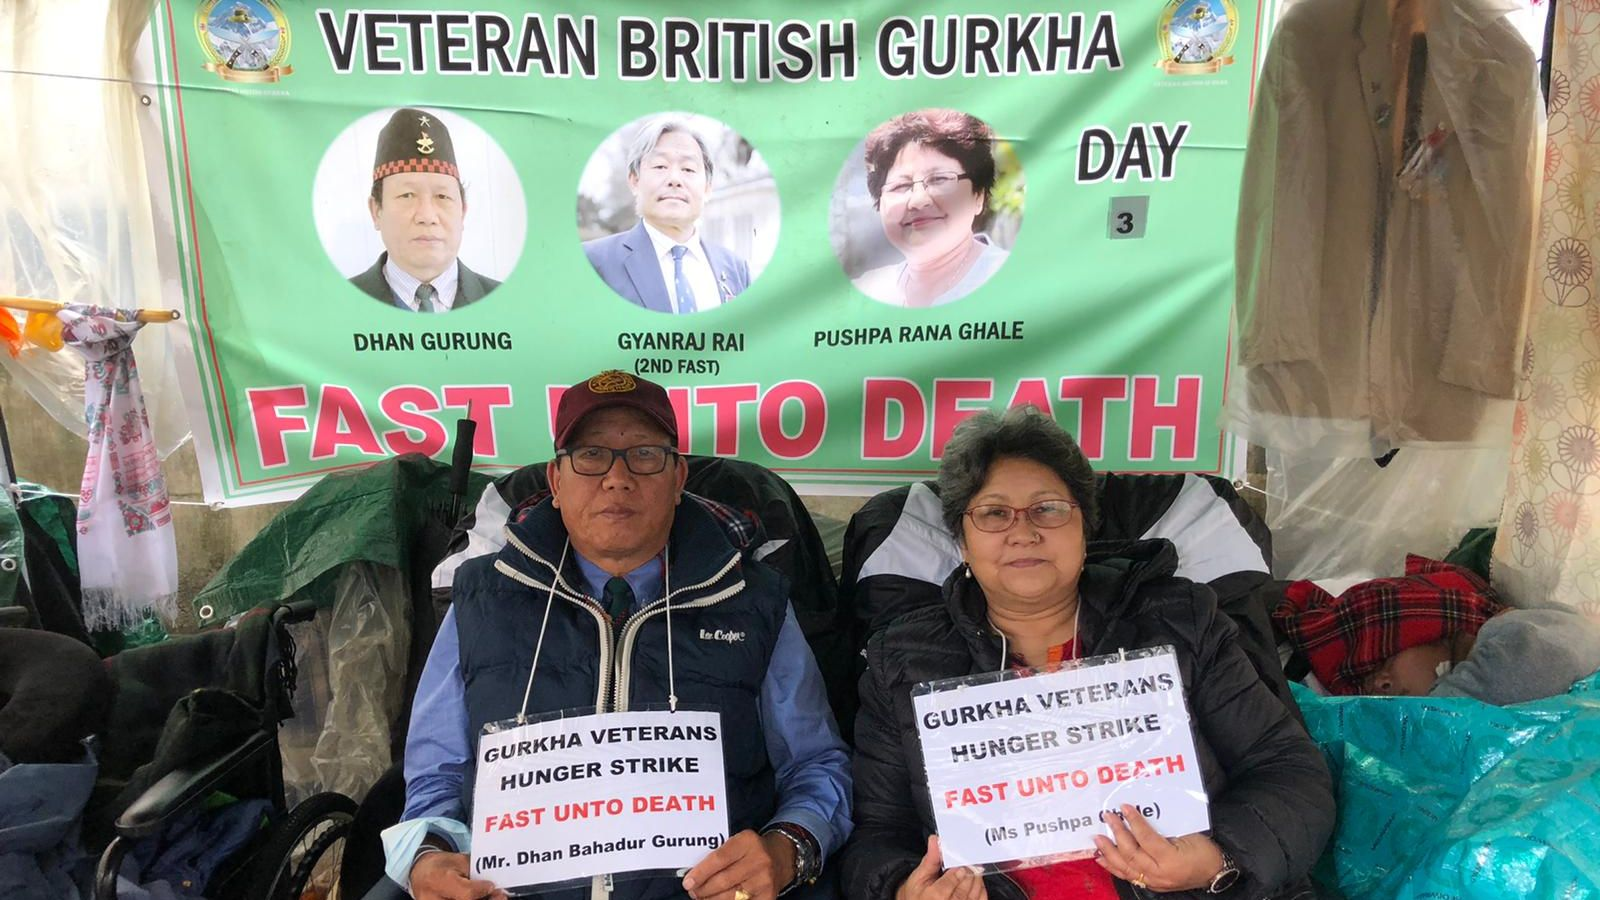 Ministers should stop 'dragging their heels' and address pension disparity for Gurkha veterans – Labour